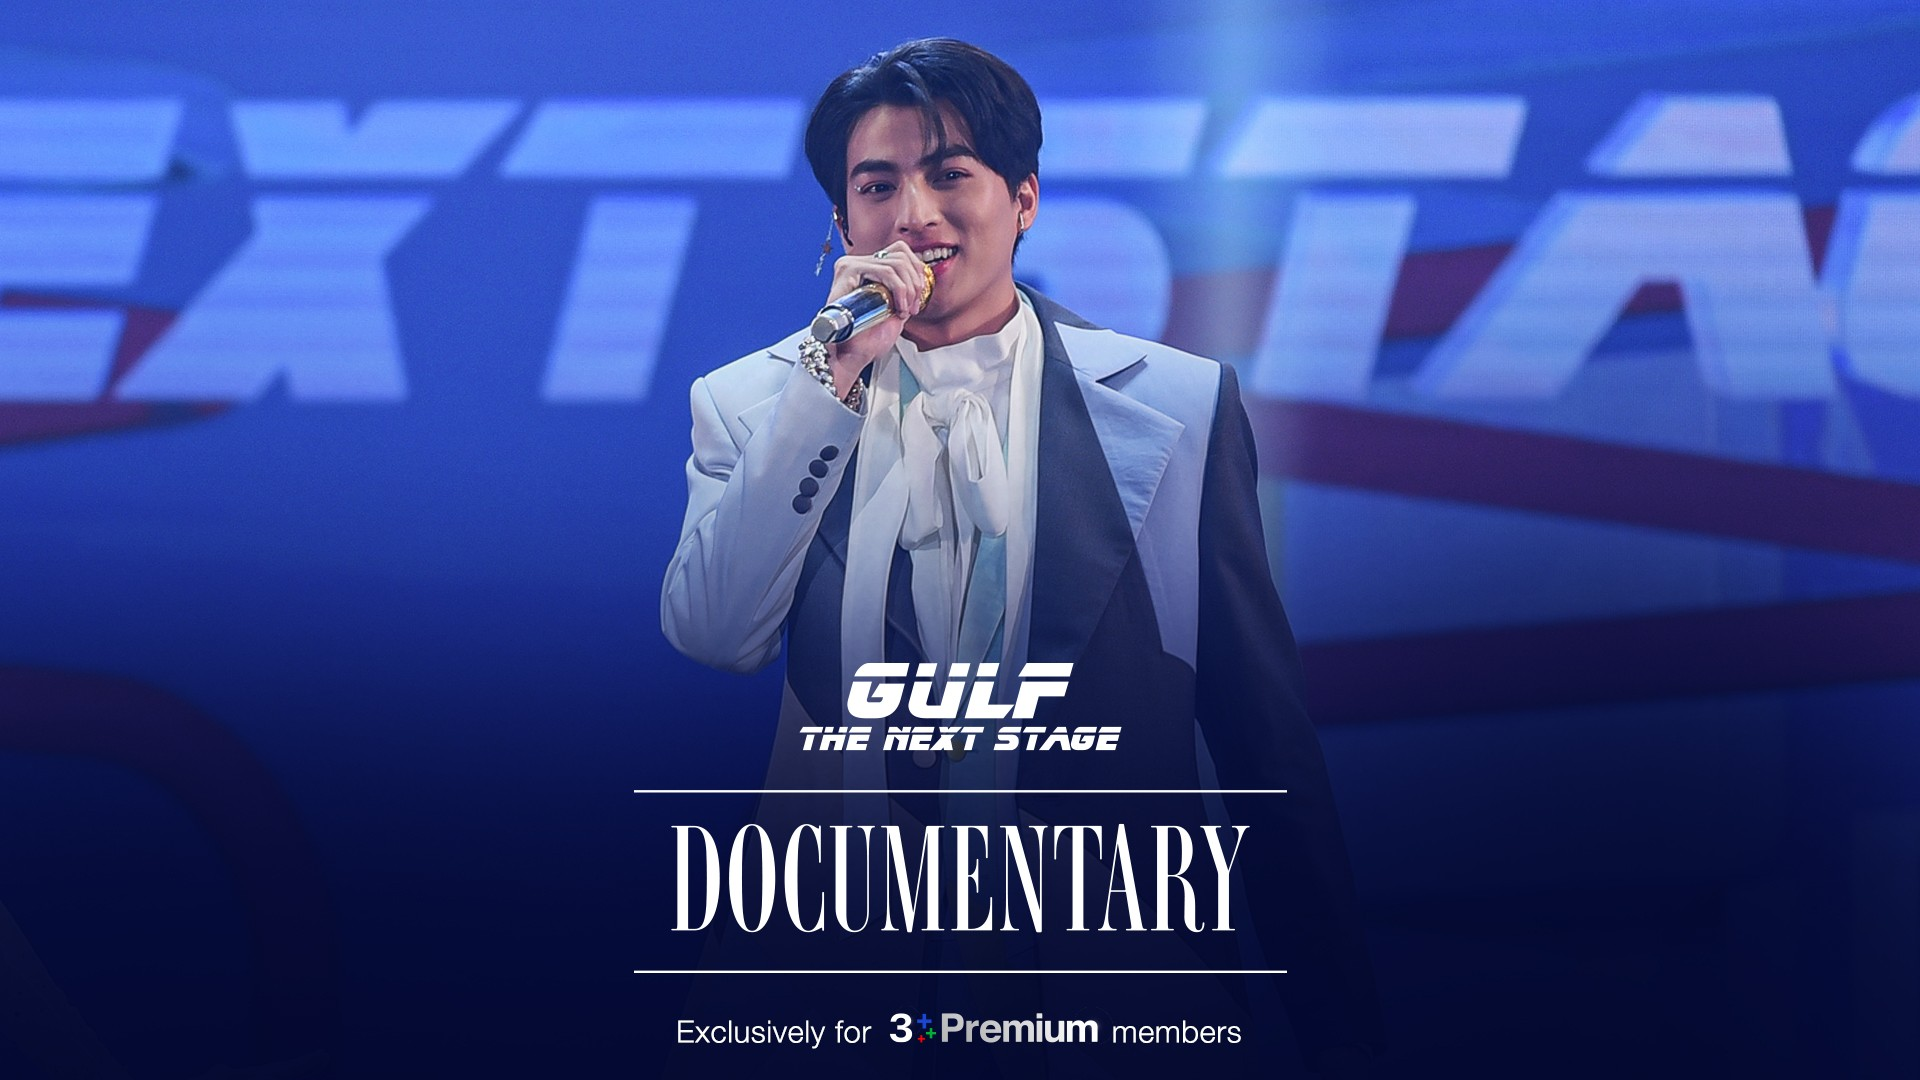 [Rerun] CH3Plus The Moment: Gulf The Next Stage